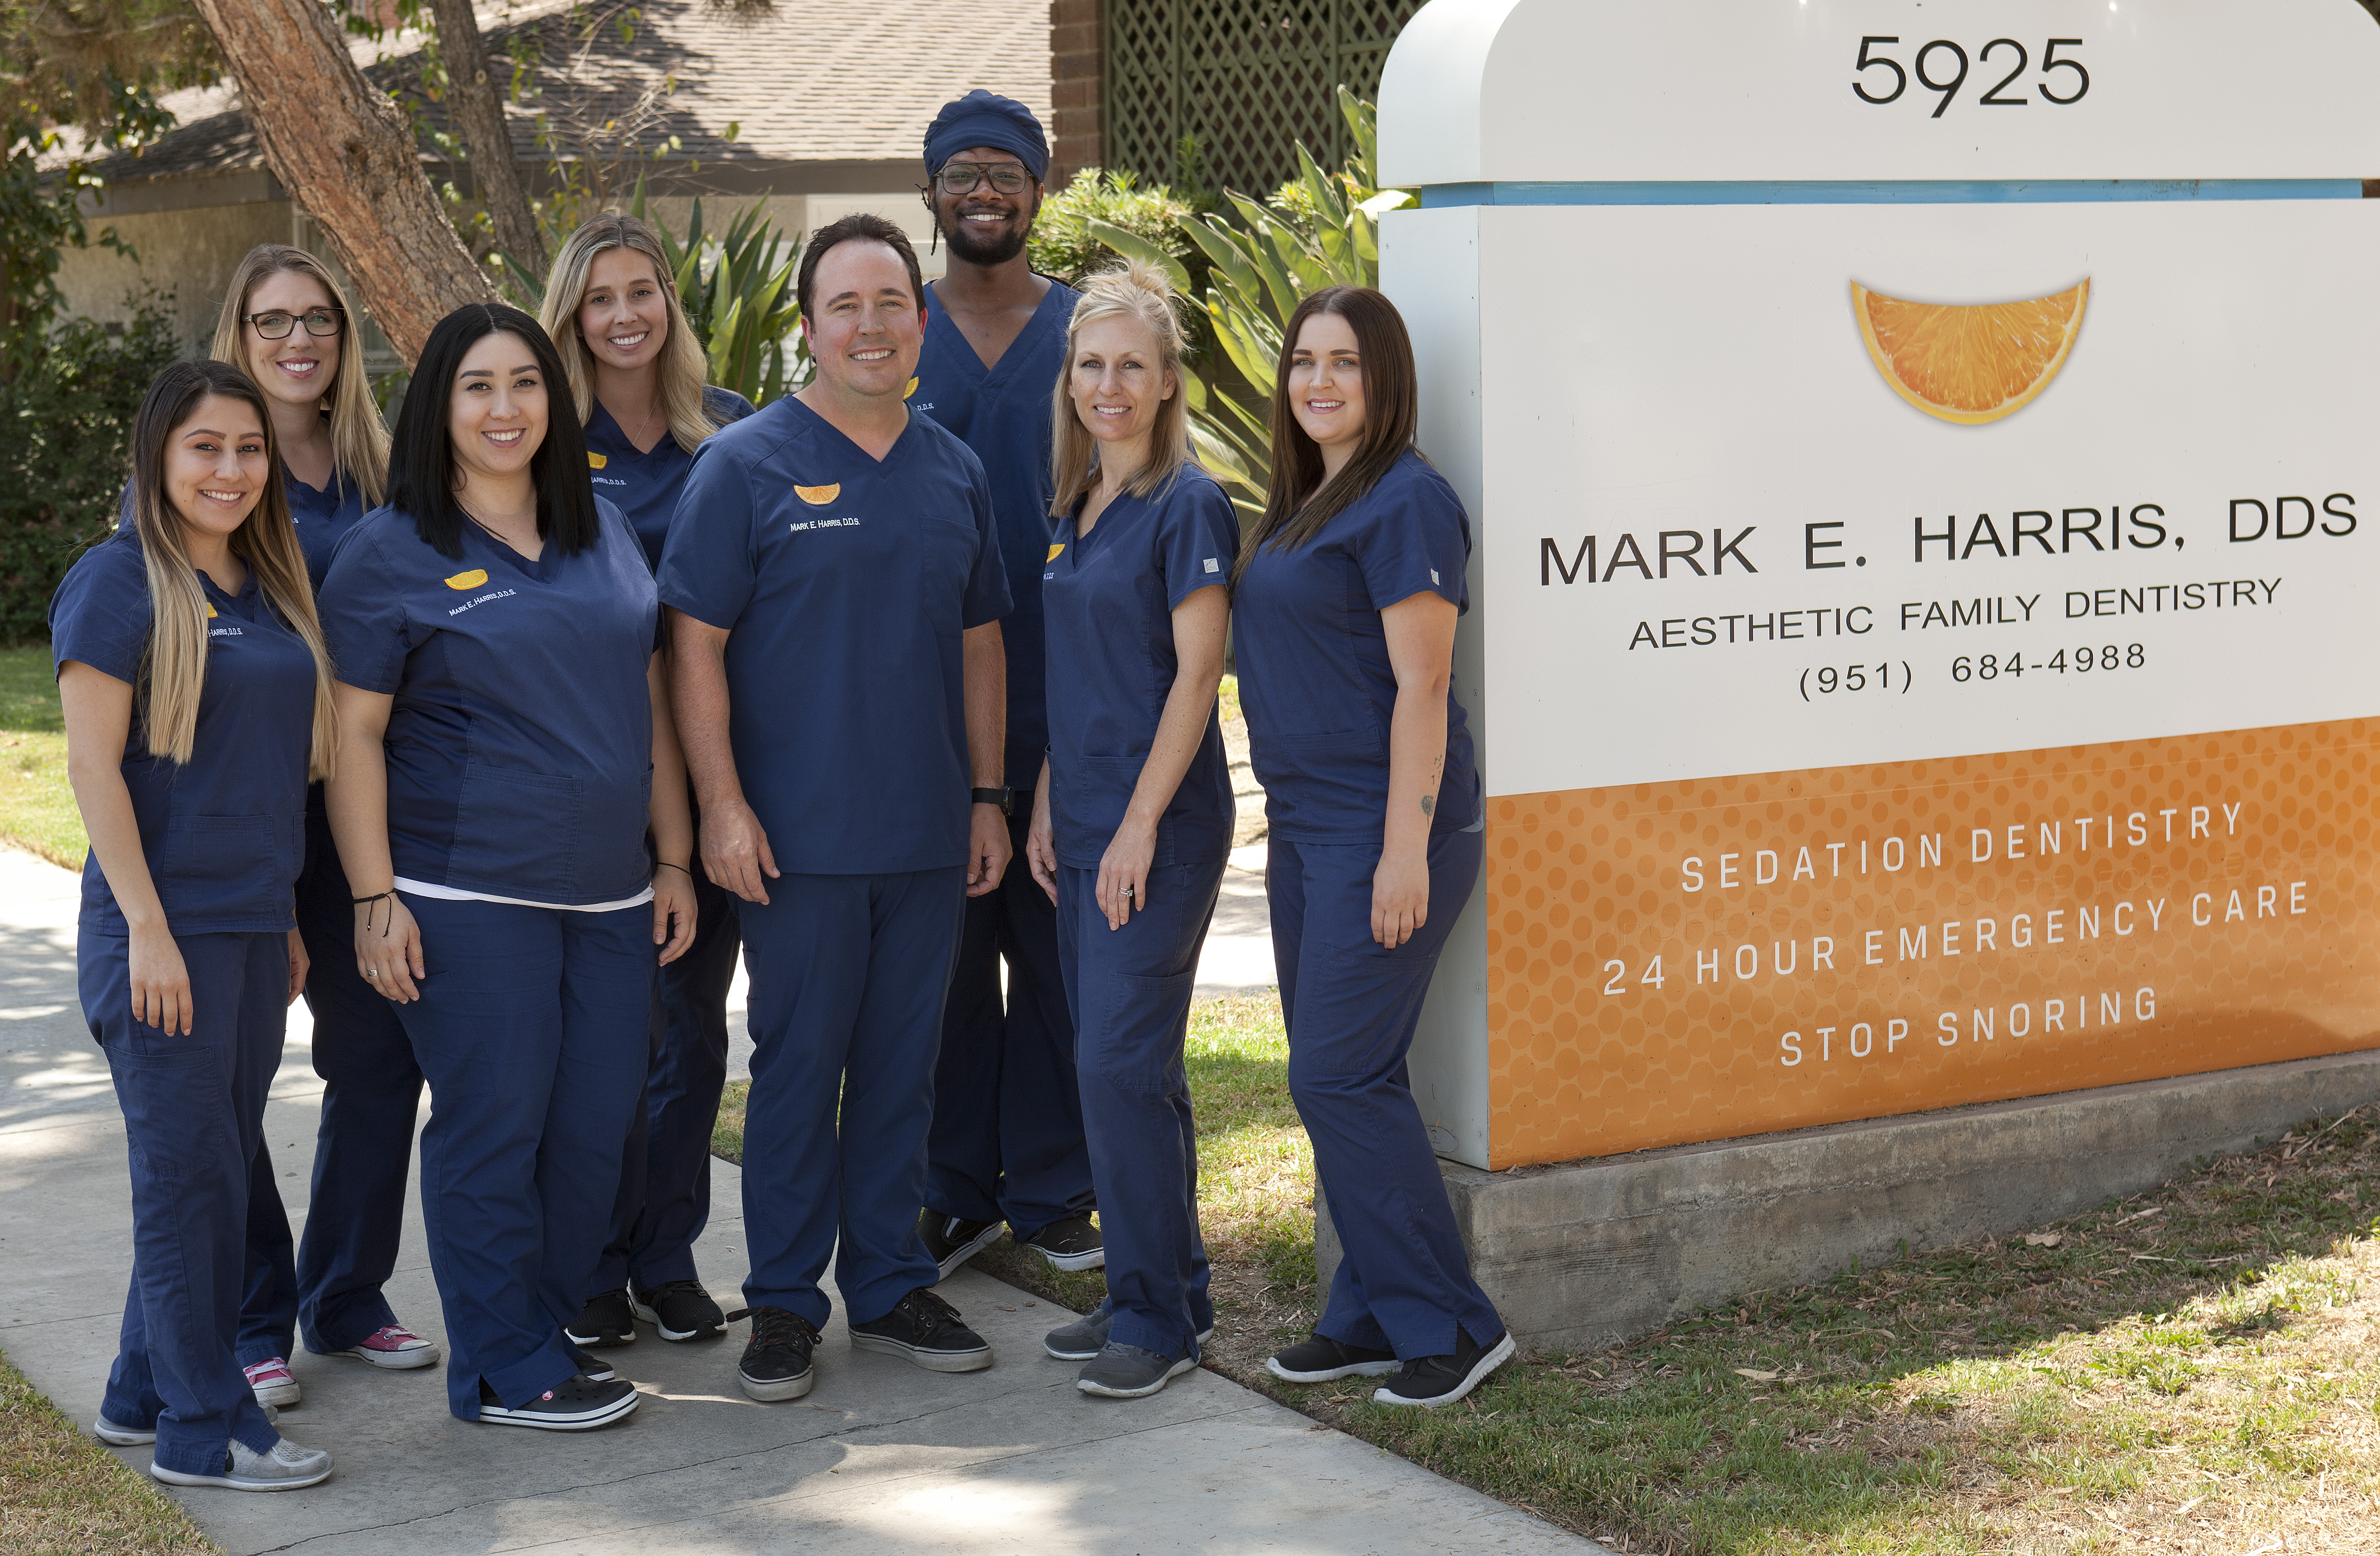 Mark E Harris DDS reviews | 5925 Brockton Ave Suite B - Riverside CA